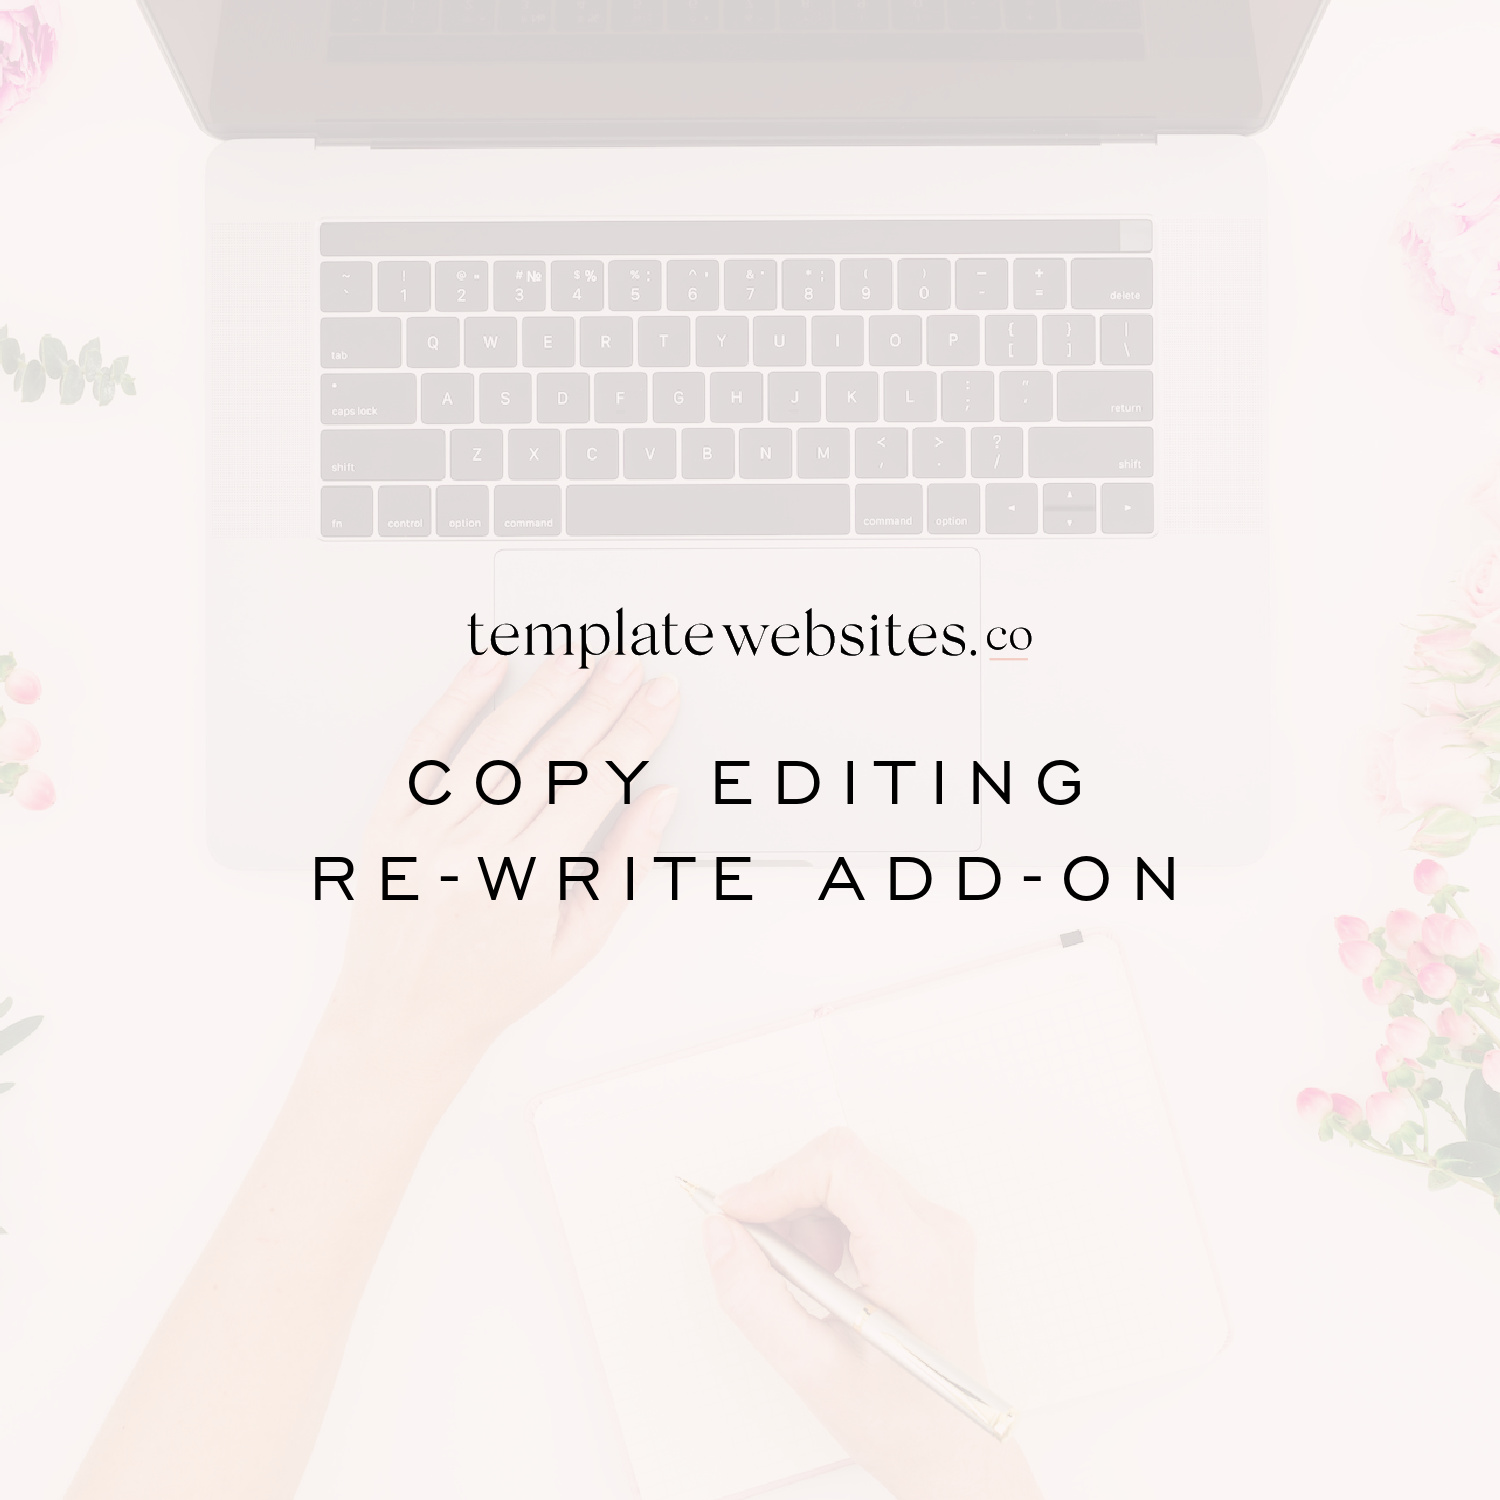 Copy editing add on for website design Sarah professional copywriting for coaches